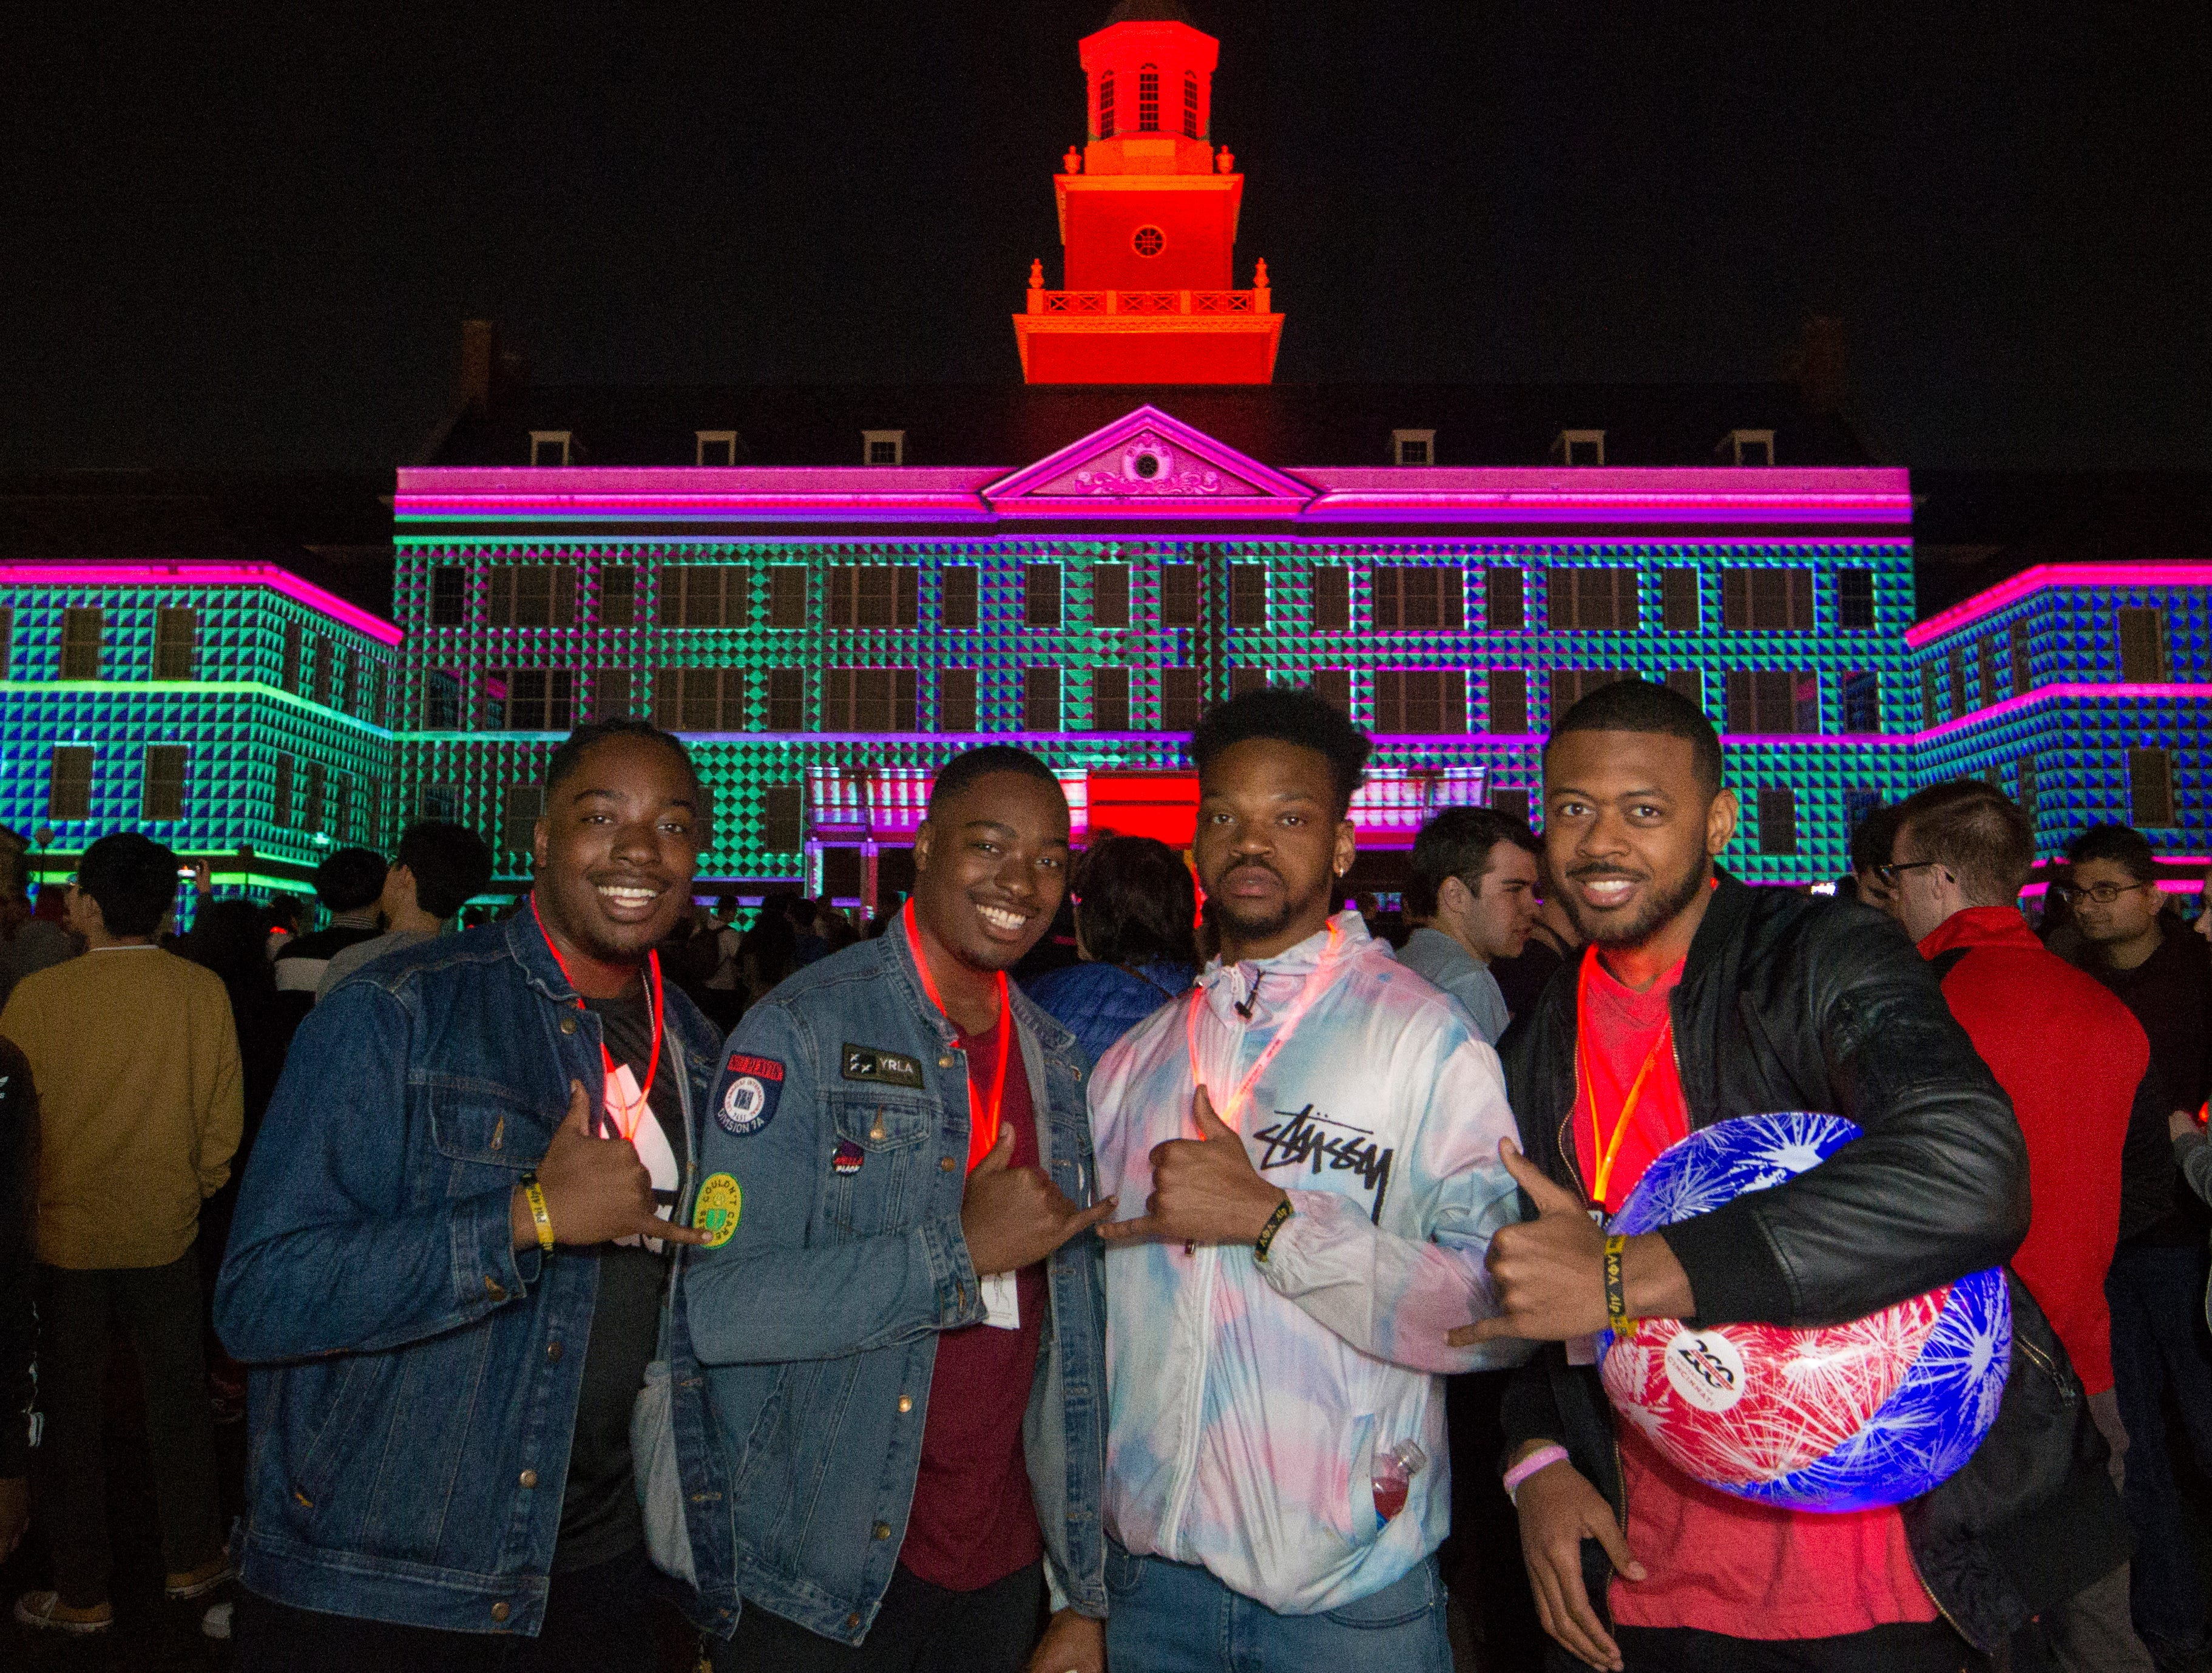 Left to right UC students Kaleb Kinebrew, Kameron Kinebrew, Denzel Welch and Dwayne Johnson posed for a photo with Momentum Projection-Mapping Light Show Saturday April 6, 2019 at McMicken Commons on the campus of the University of Cincinnati. University of Cincinnati/Joseph Fuqua II